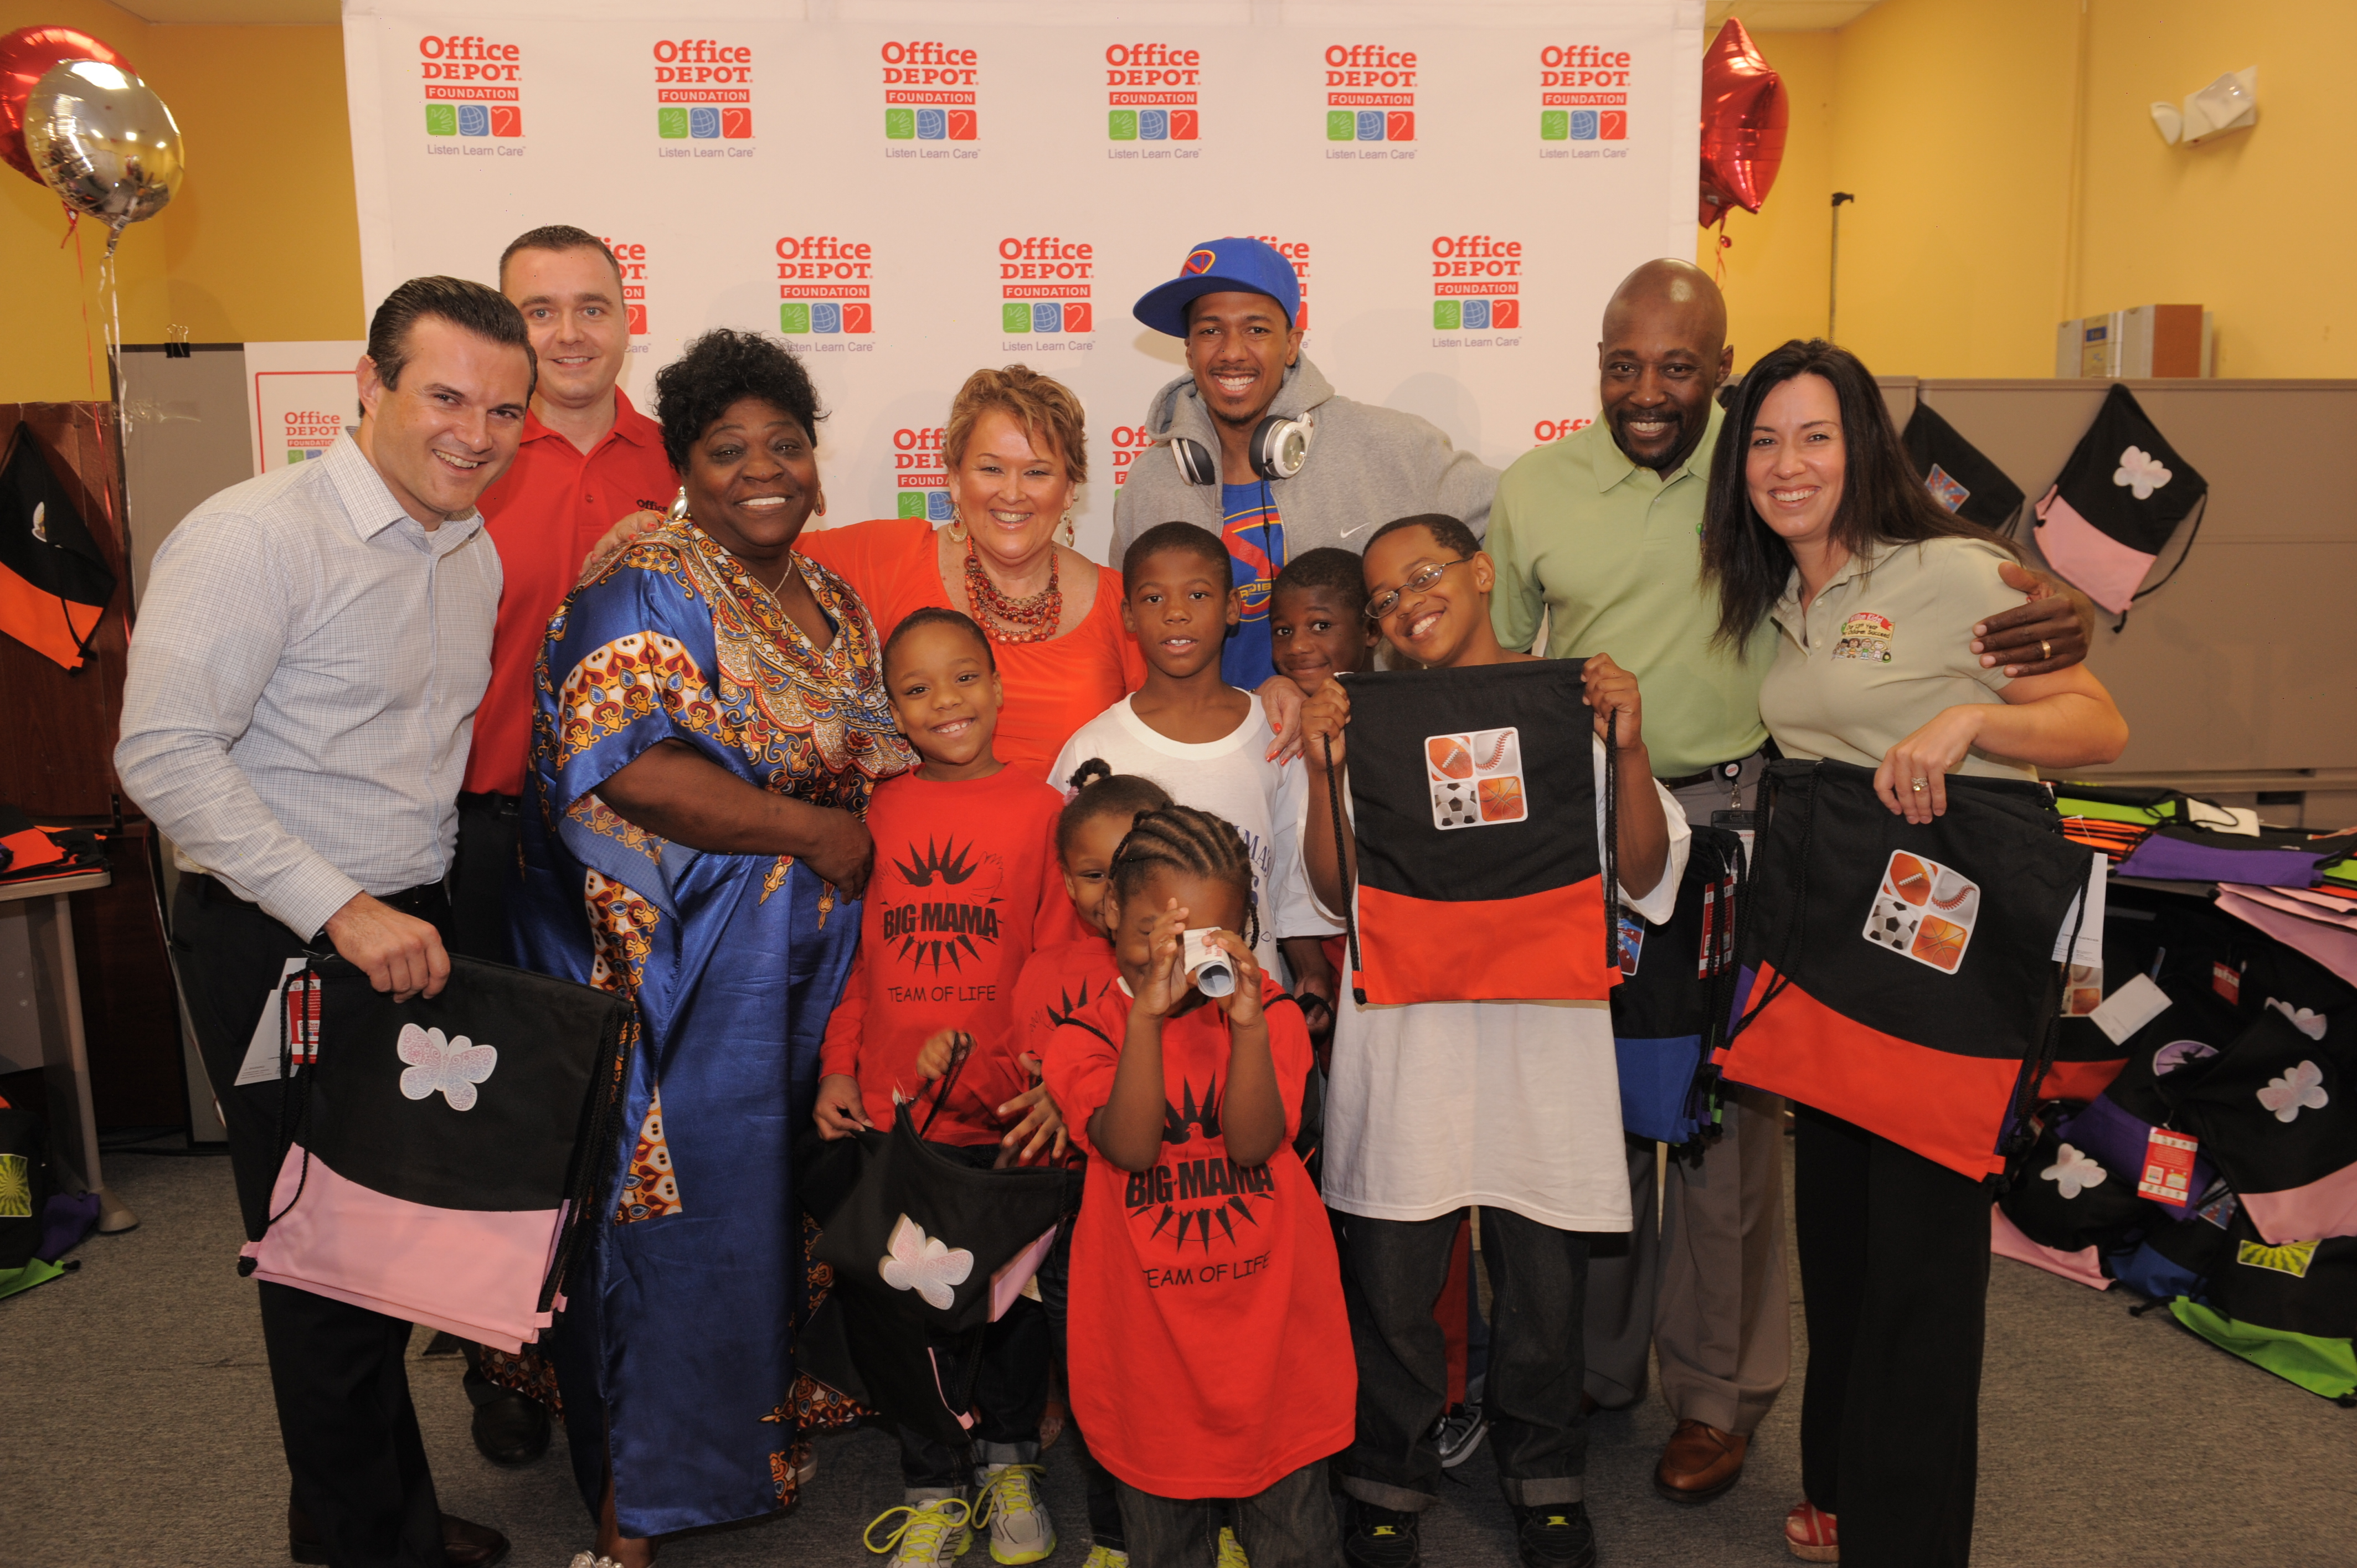 s of Nick Cannon Participating in an fice Depot Foundation